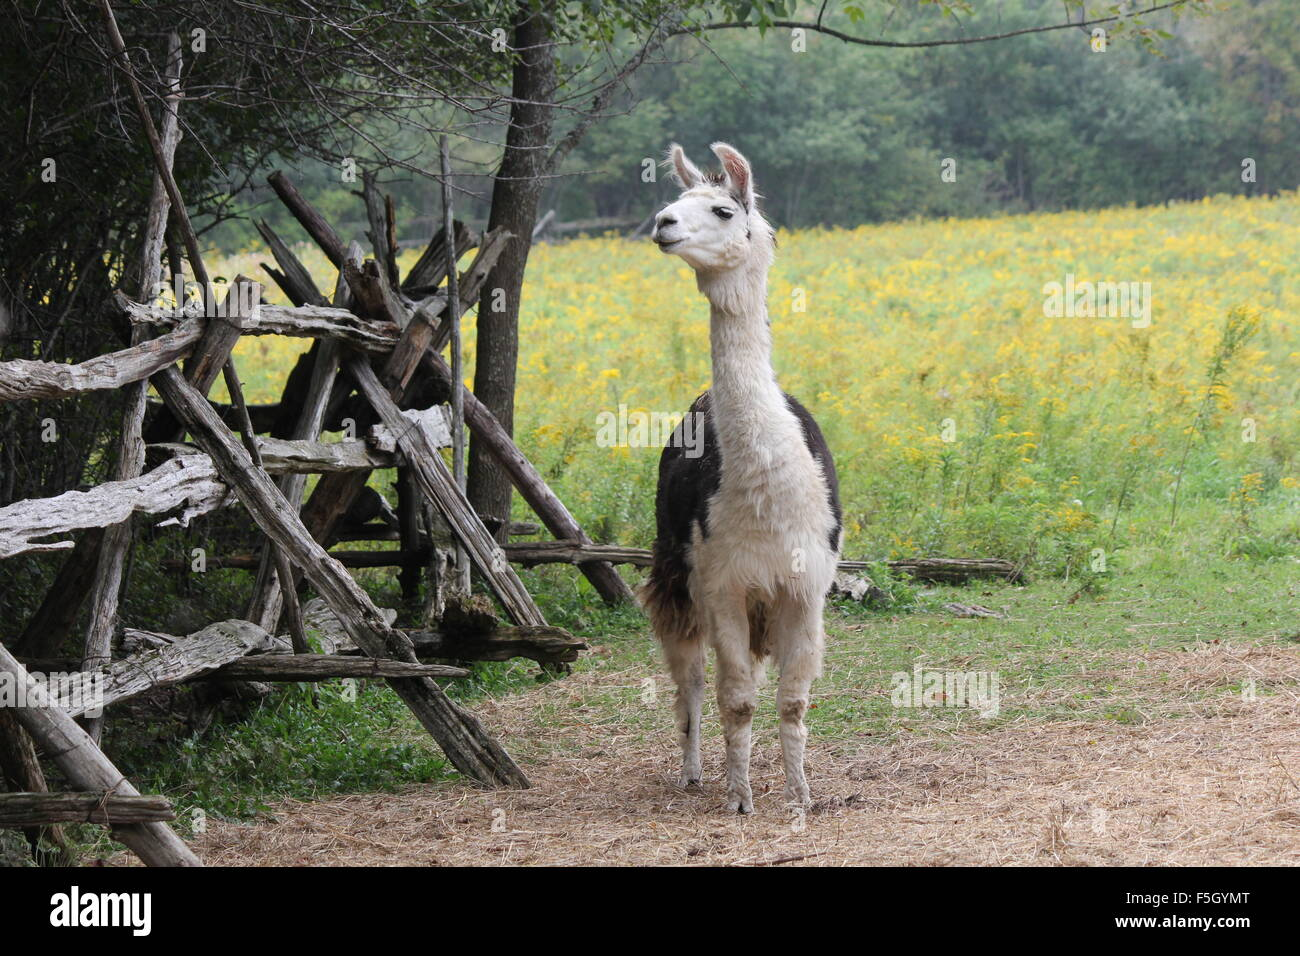 Llama on a small hobby farm. The Llama is a domesticated South American camelid, was widely used as a meat and pack - Stock Image